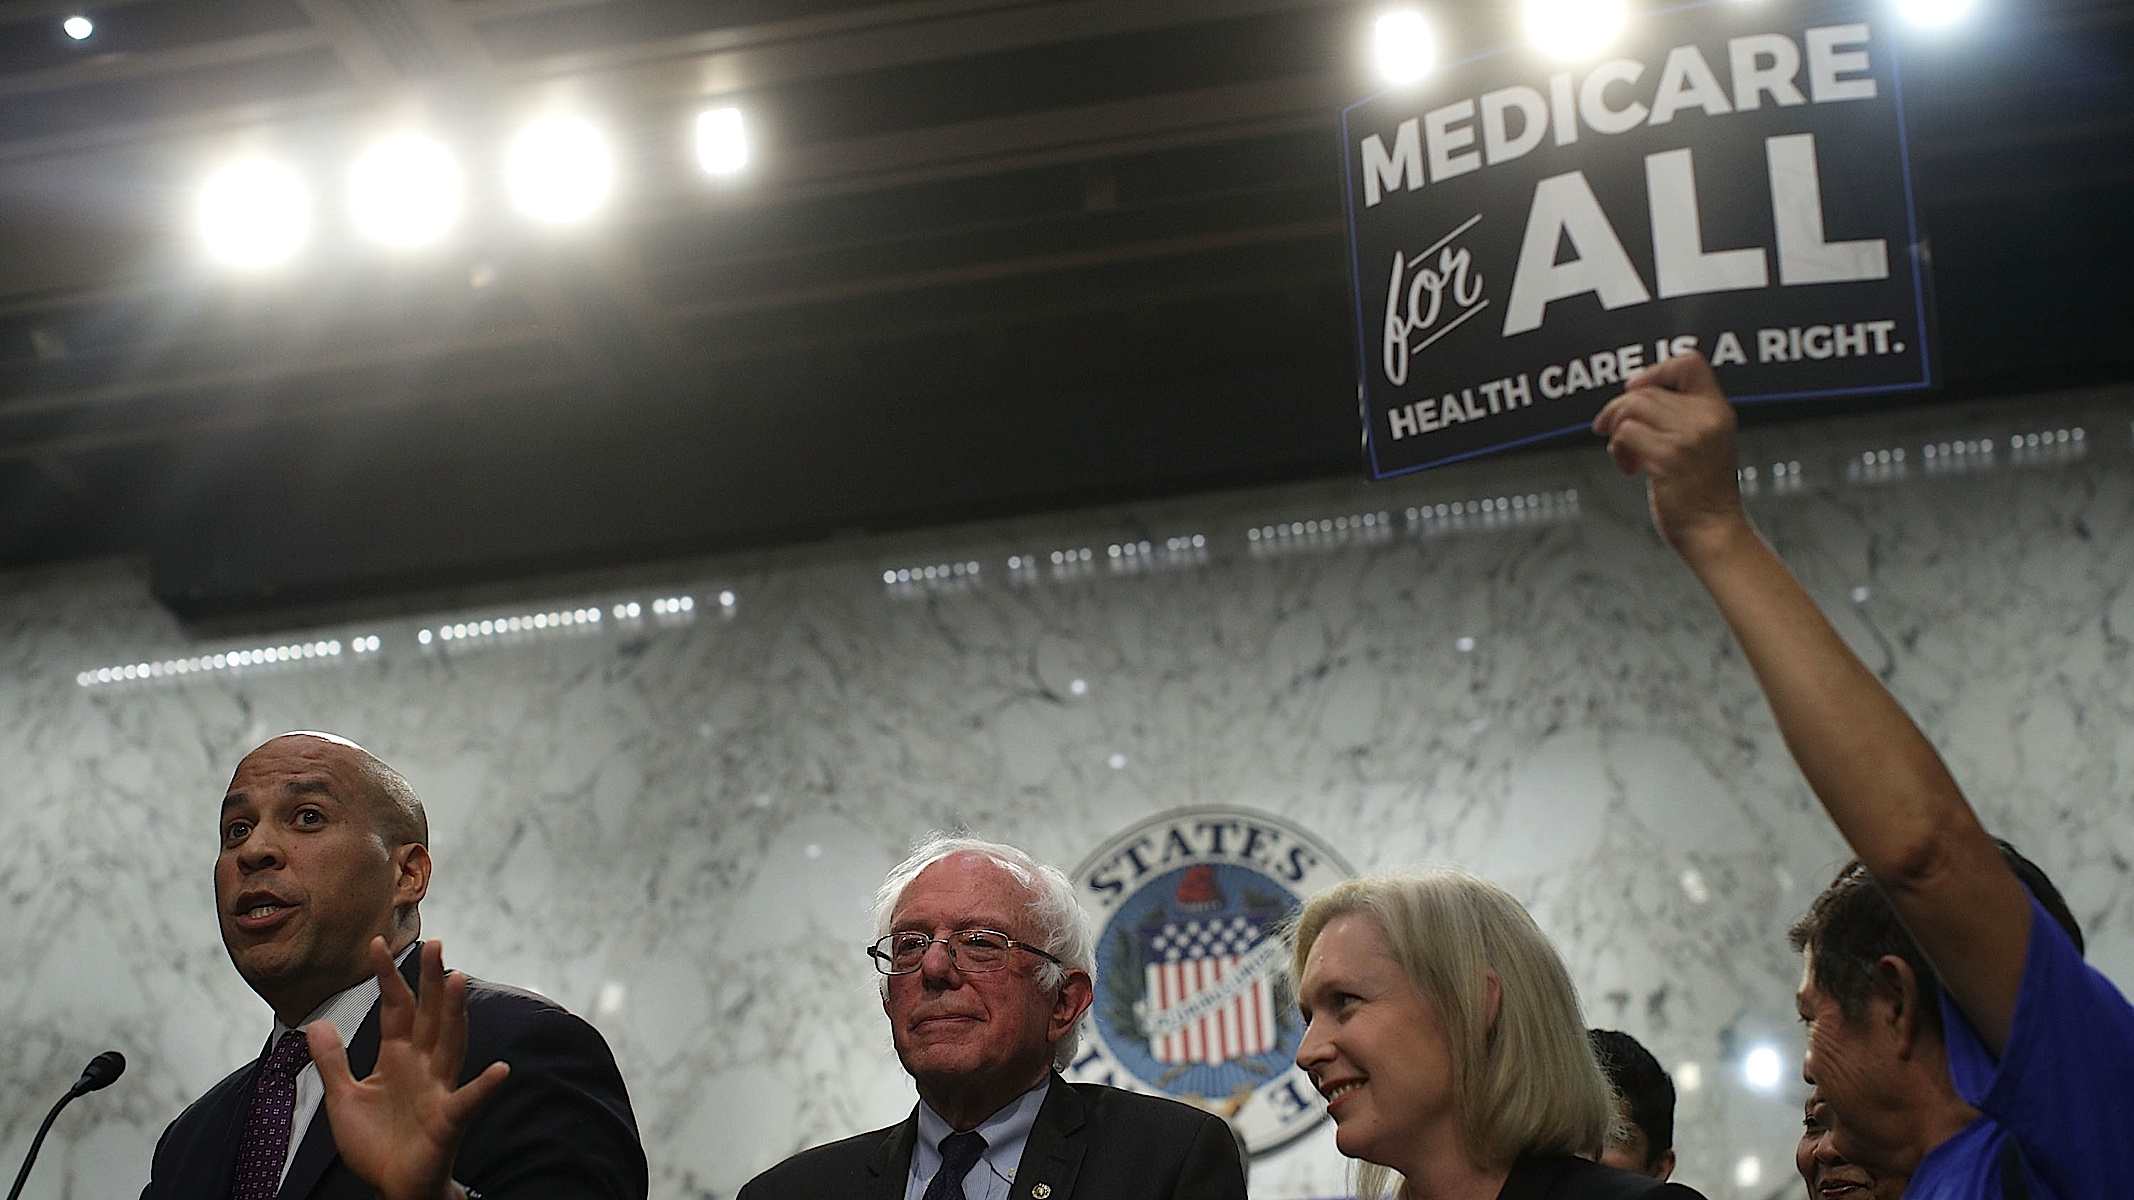 Medicare For All Will Save You Money Even Though It Will Raise Taxes. It's Time for Americans to Grasp This Concept.